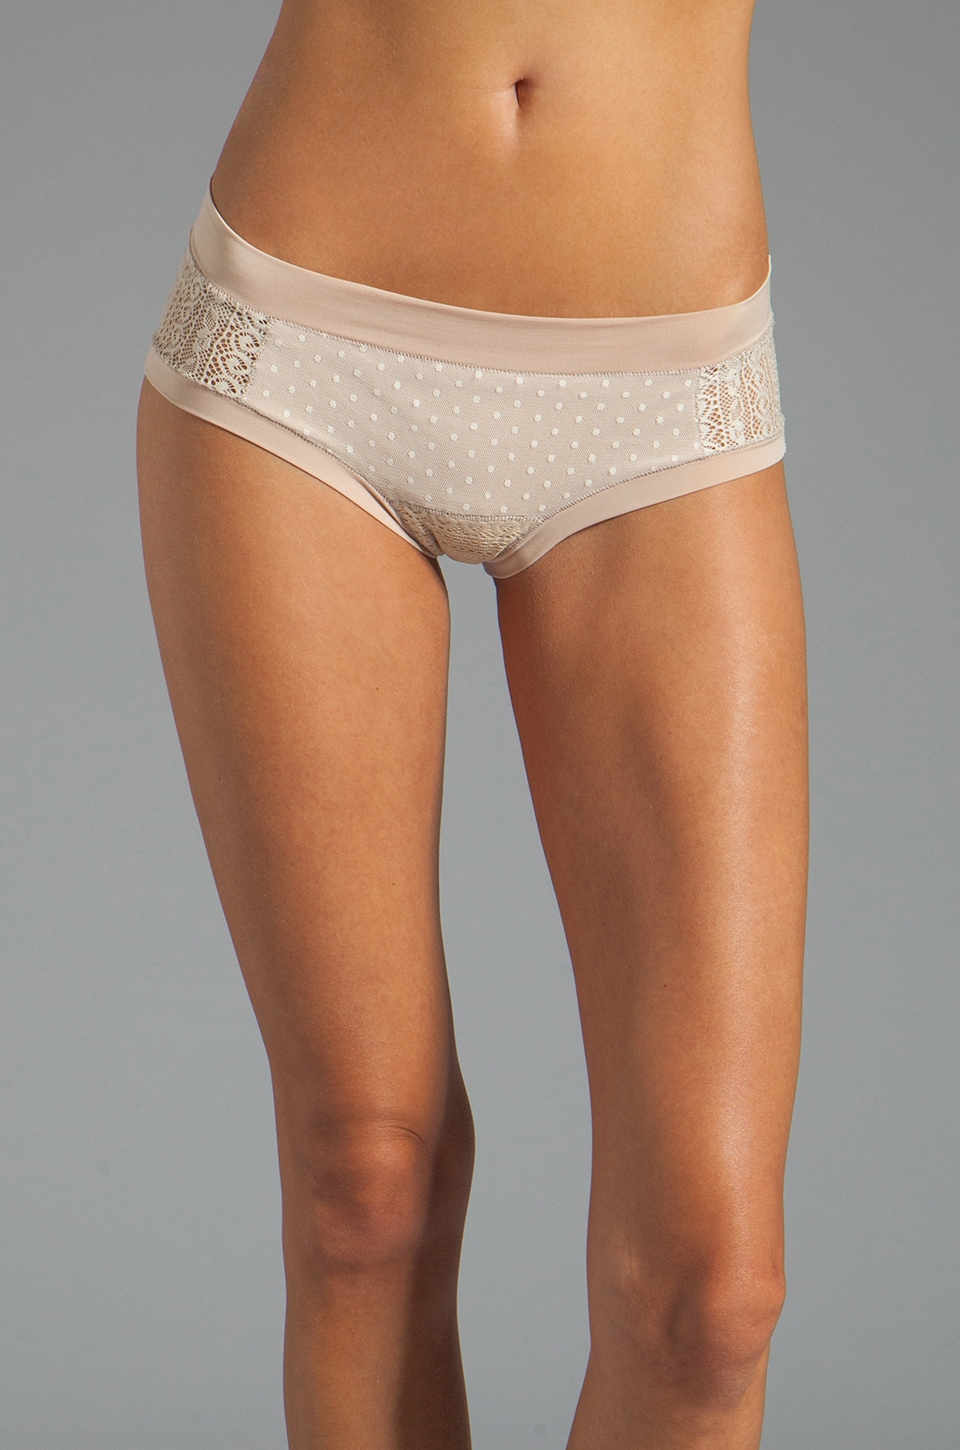 XiRENA Dulcia Bottoms in Jasper